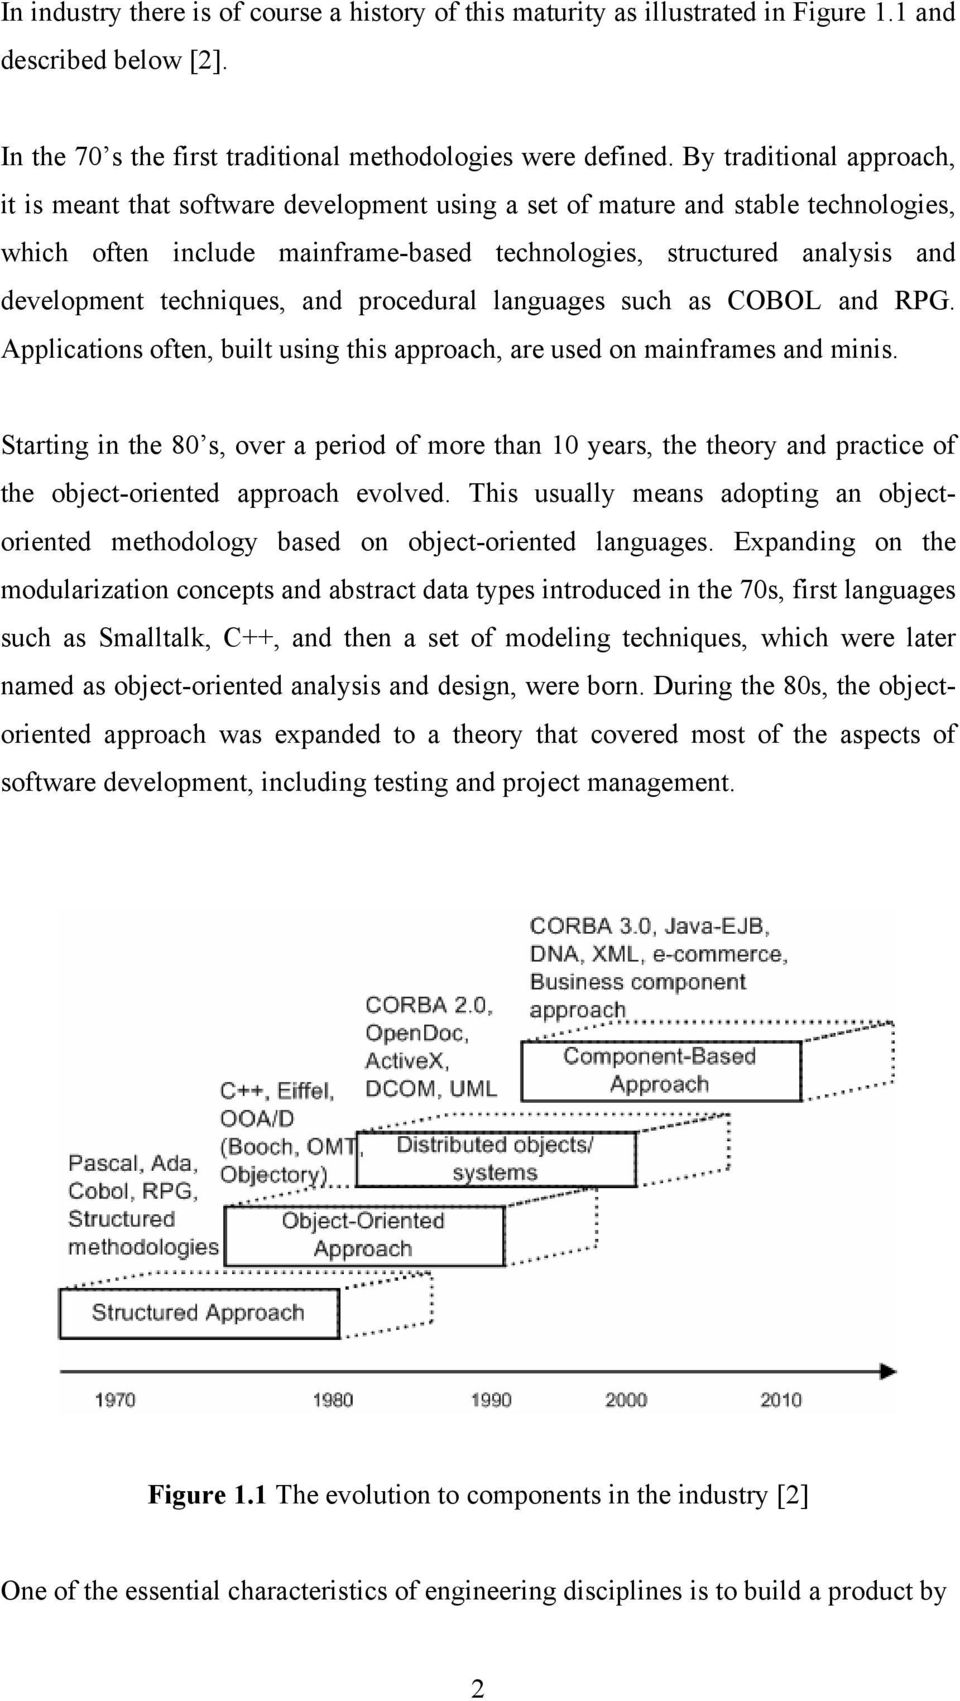 techniques, and procedural languages such as COBOL and RPG. Applications often, built using this approach, are used on mainframes and minis.